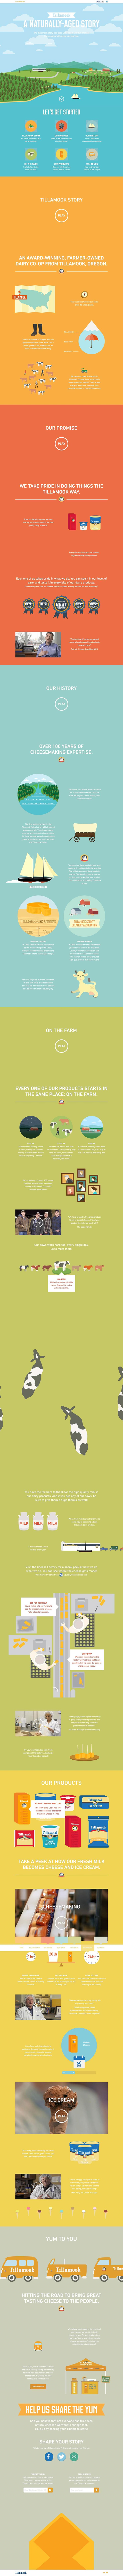 #Flat #ui #illustration #pastel #farming #dairy #ux #design